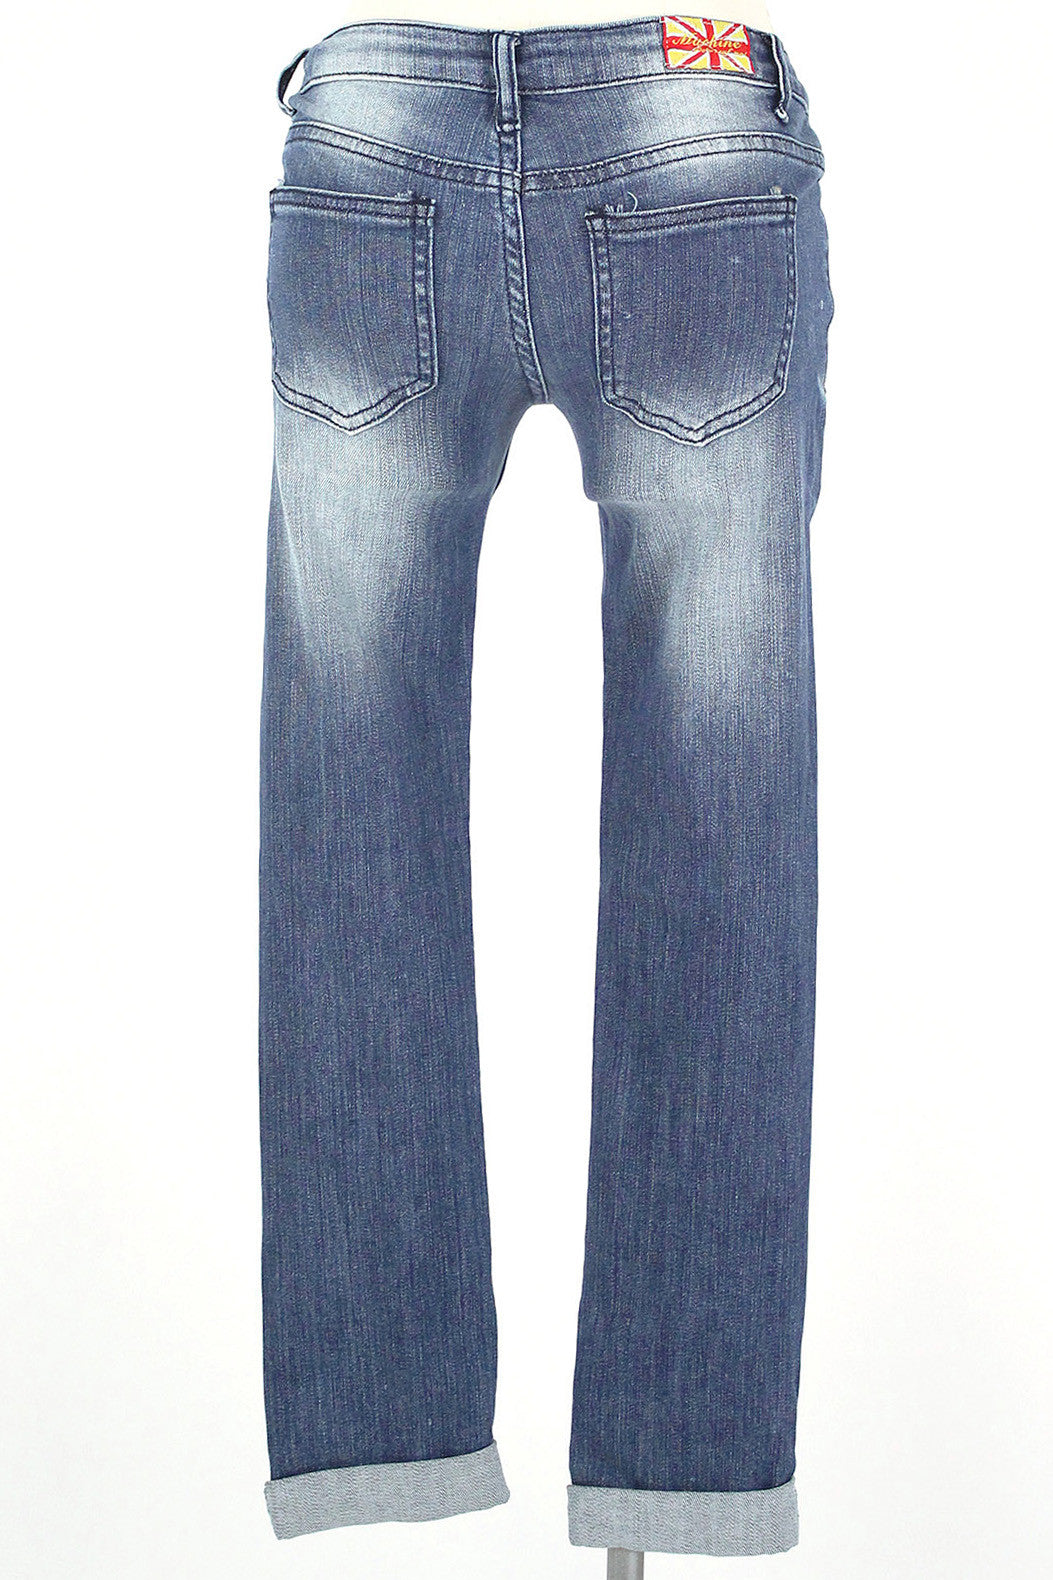 Distressed Crop Jean / Medium Wash